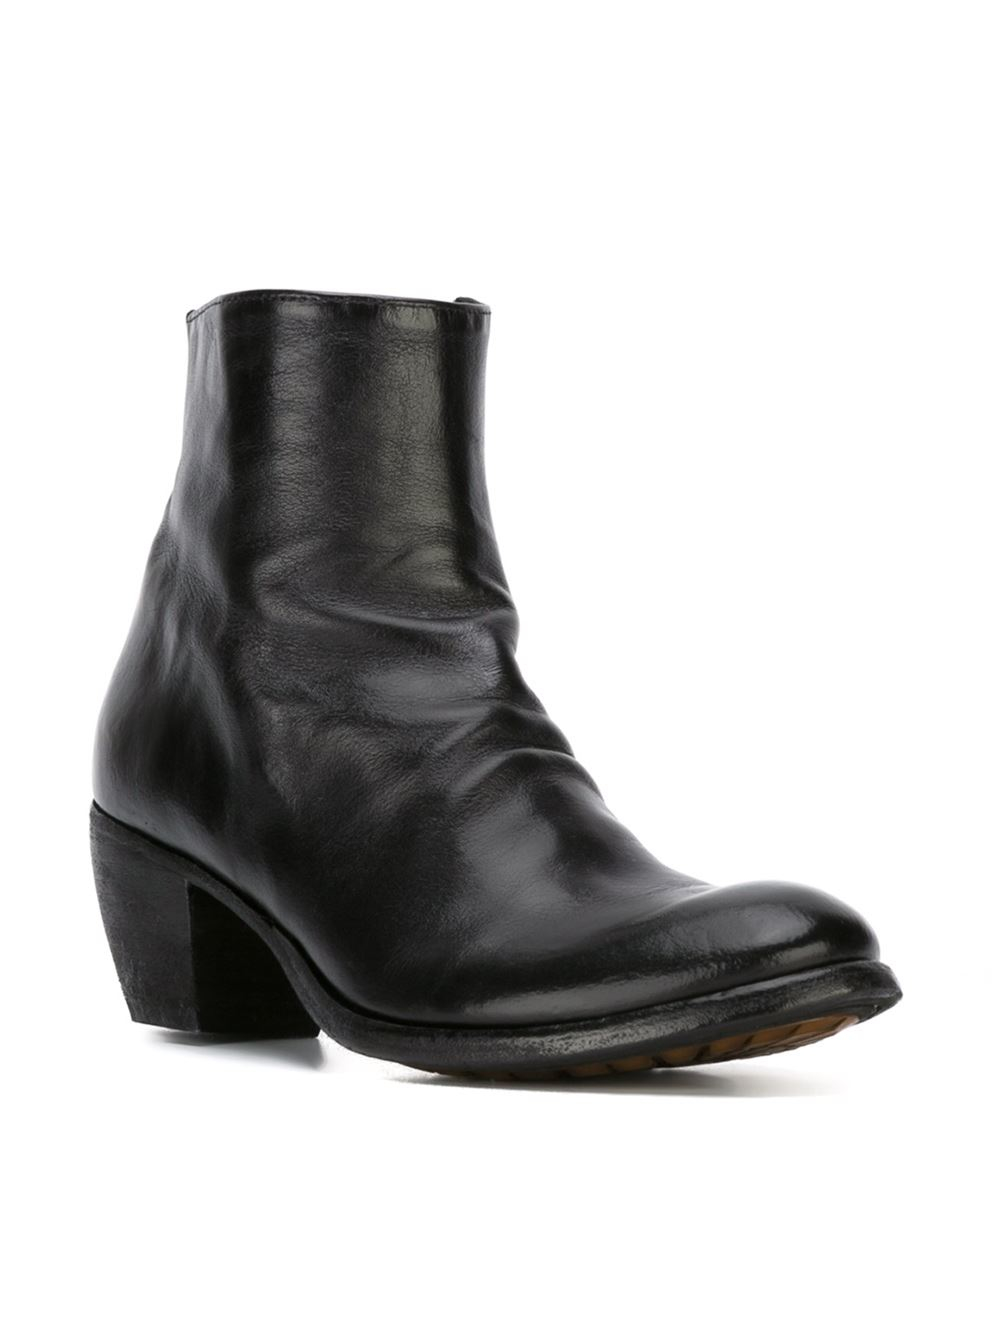 Simple Officine Creative Black Leather Ankle Boots In Black (Marrone)   Lyst